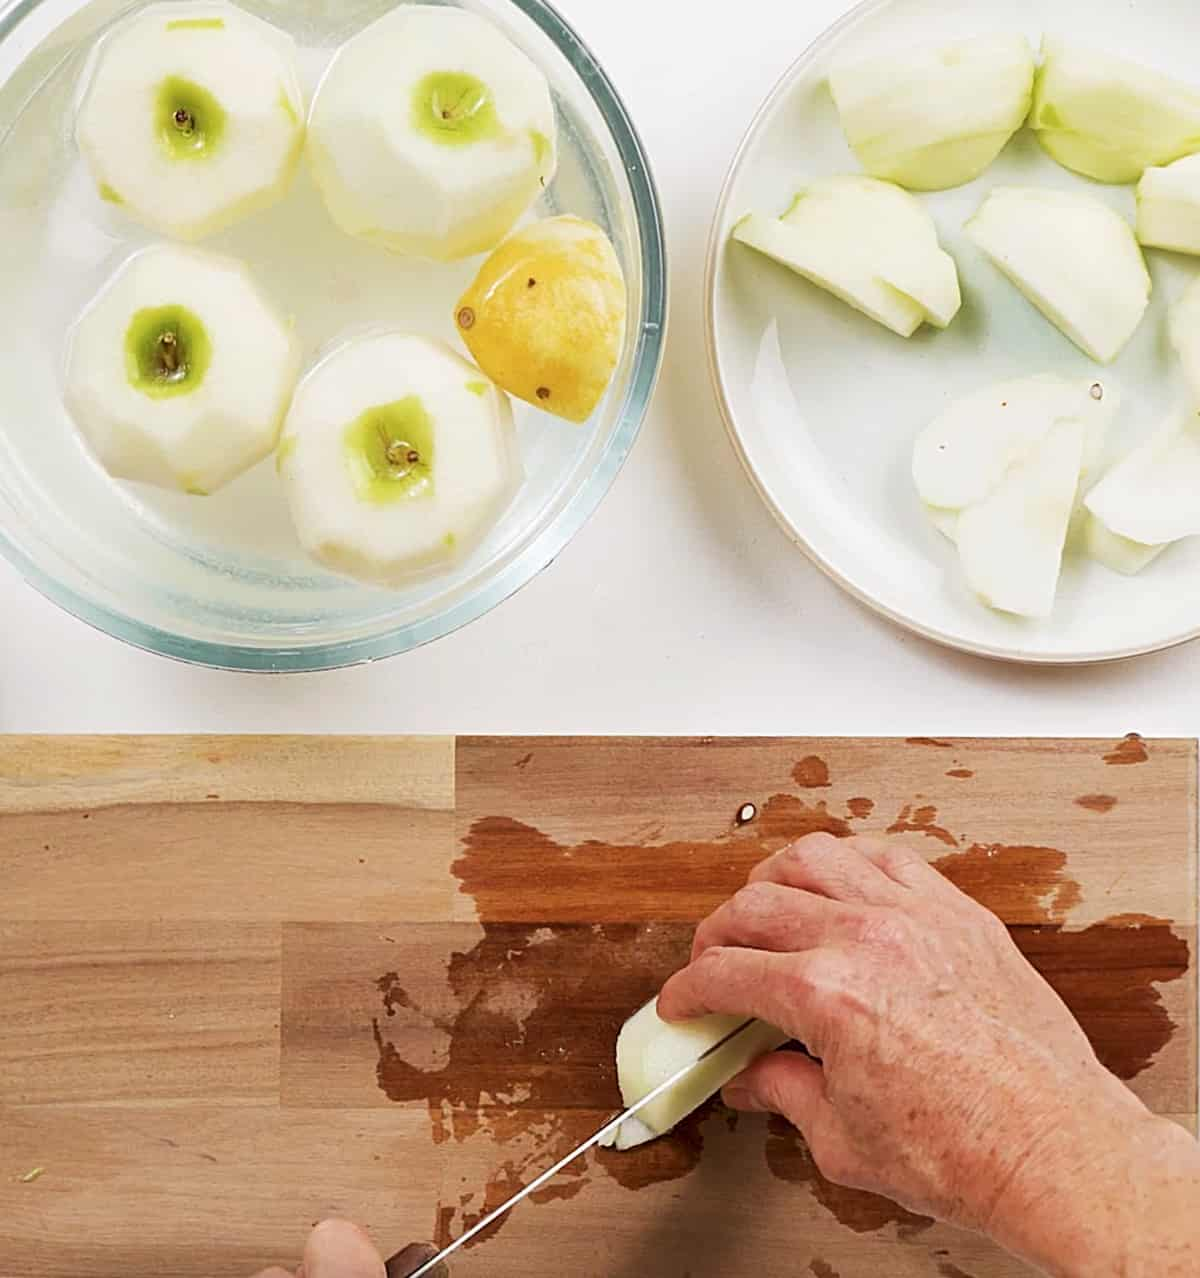 Cutting apples in wooden board with bowl containing peeled apples